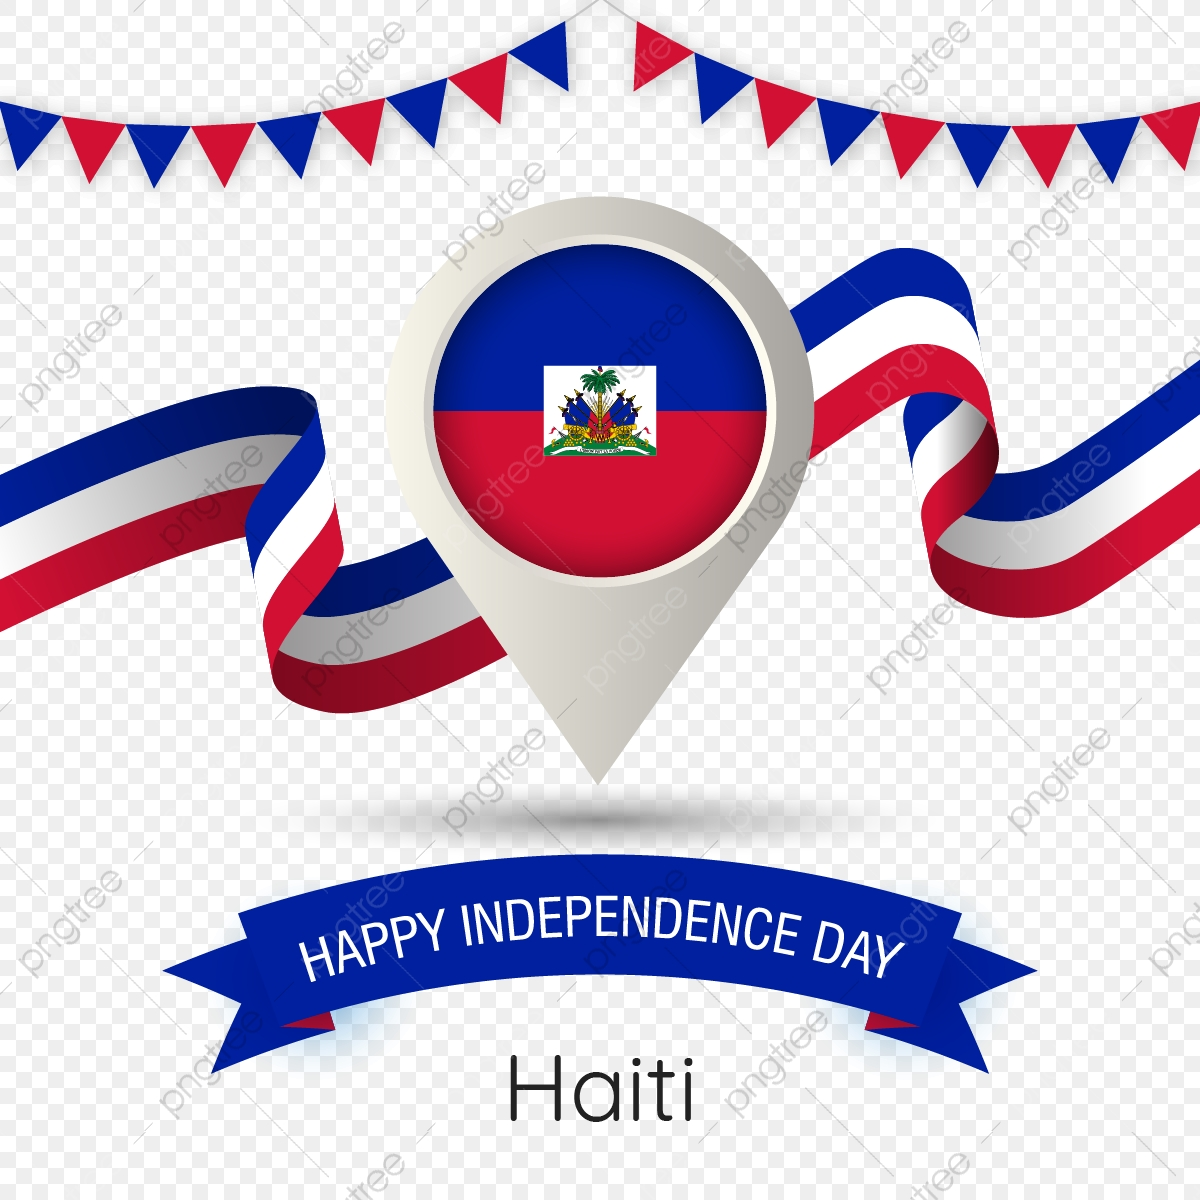 Haiti Independence Day With Stylized Country Flag Pin Illustration.